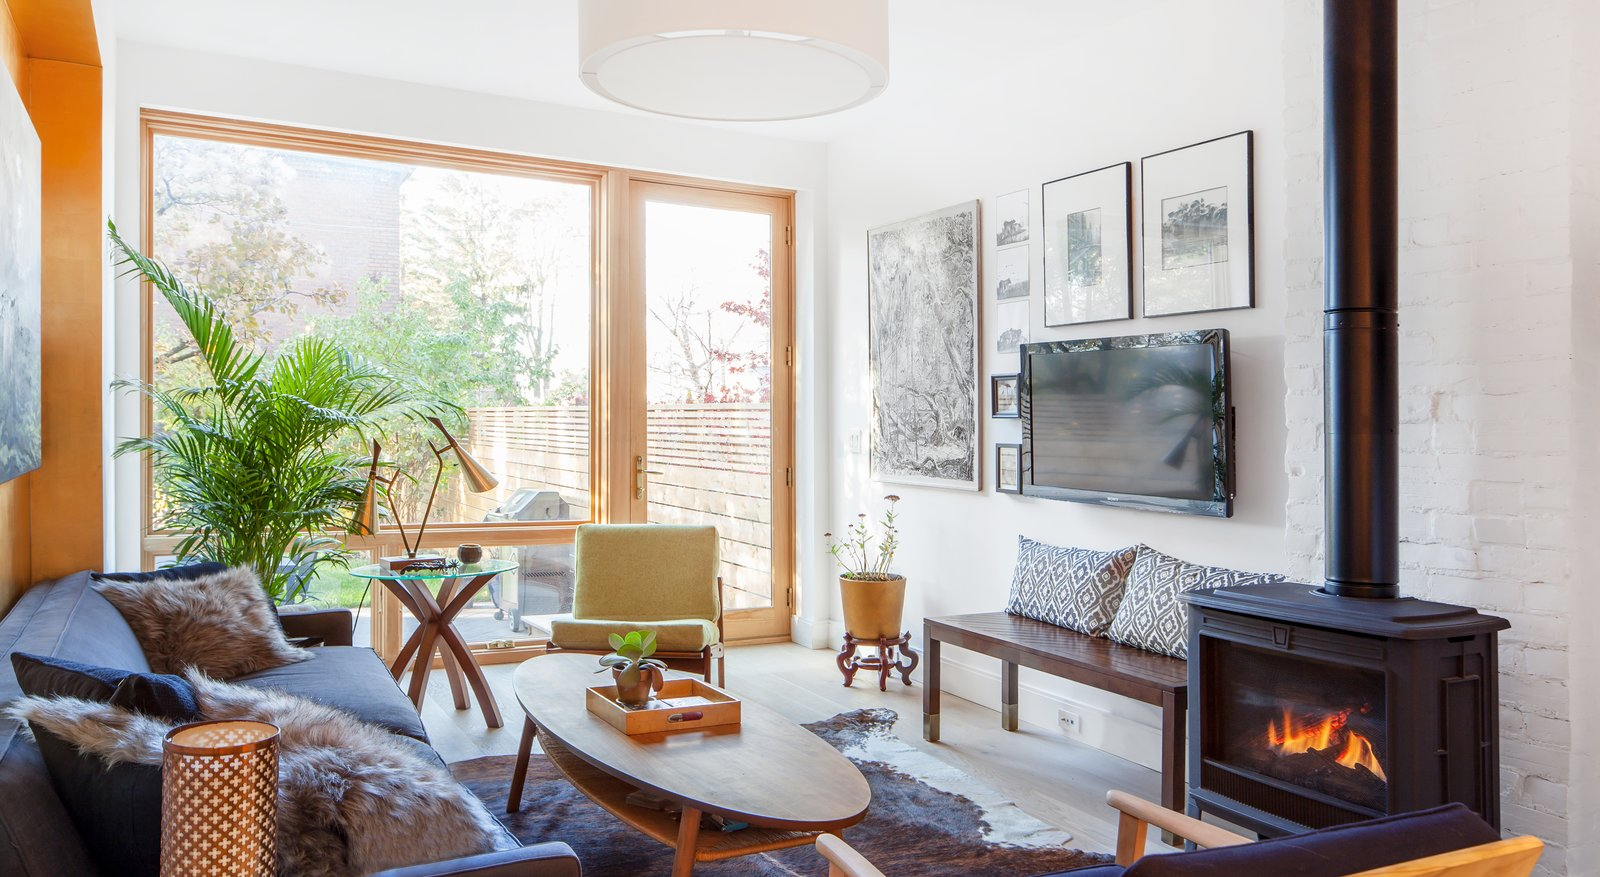 Living Room, Bench, End Tables, Sofa, Coffee Tables, Chair, Ceiling Lighting, Light Hardwood Floor, Gas Burning Fireplace, and Rug Floor Living room  Ritchie Rowhouse by CAB Architects